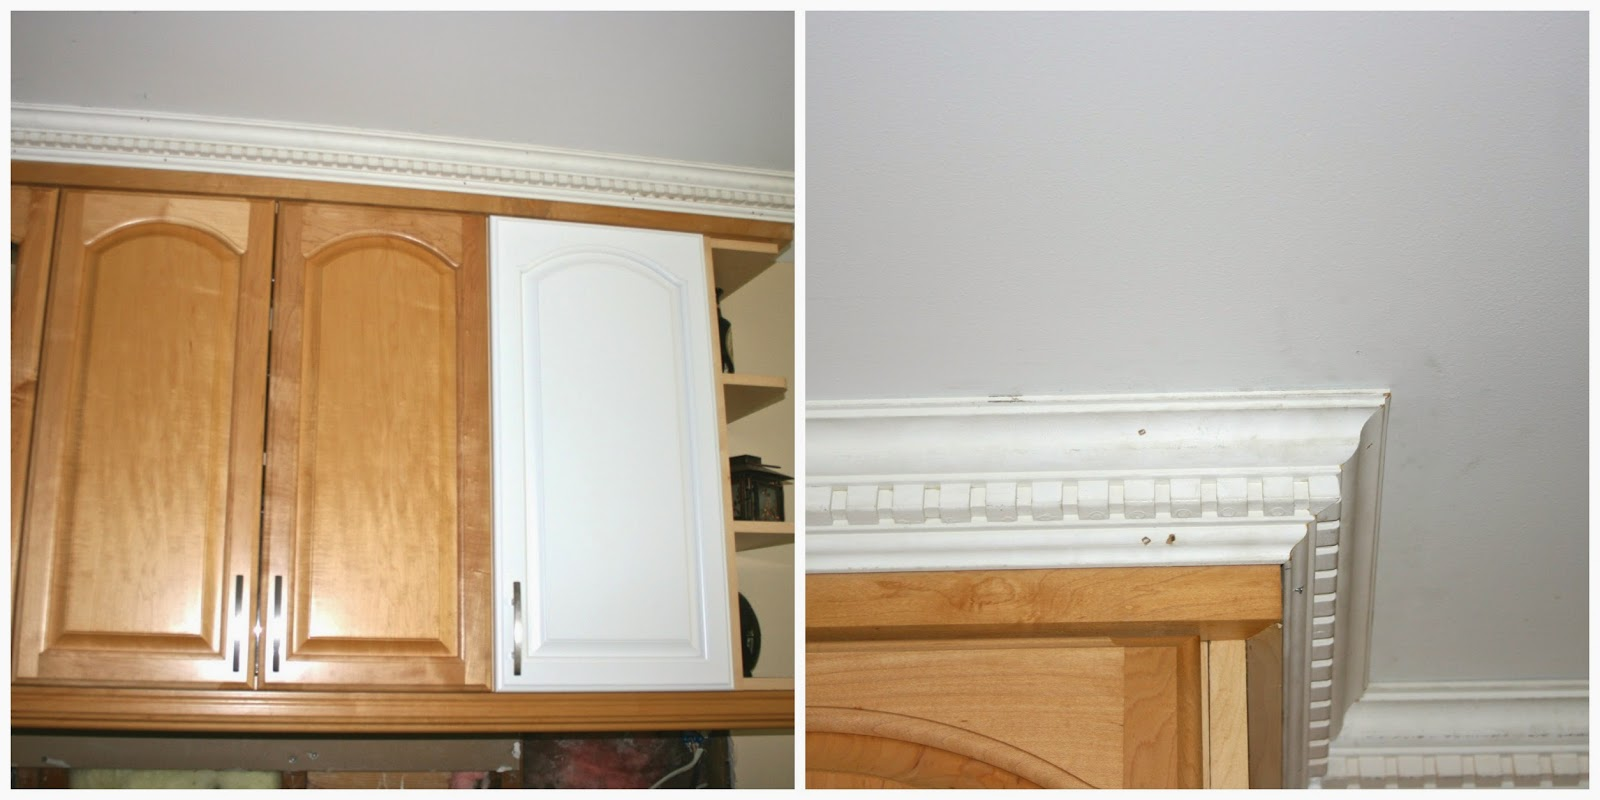 abella design revamping your old kitchen cabinets